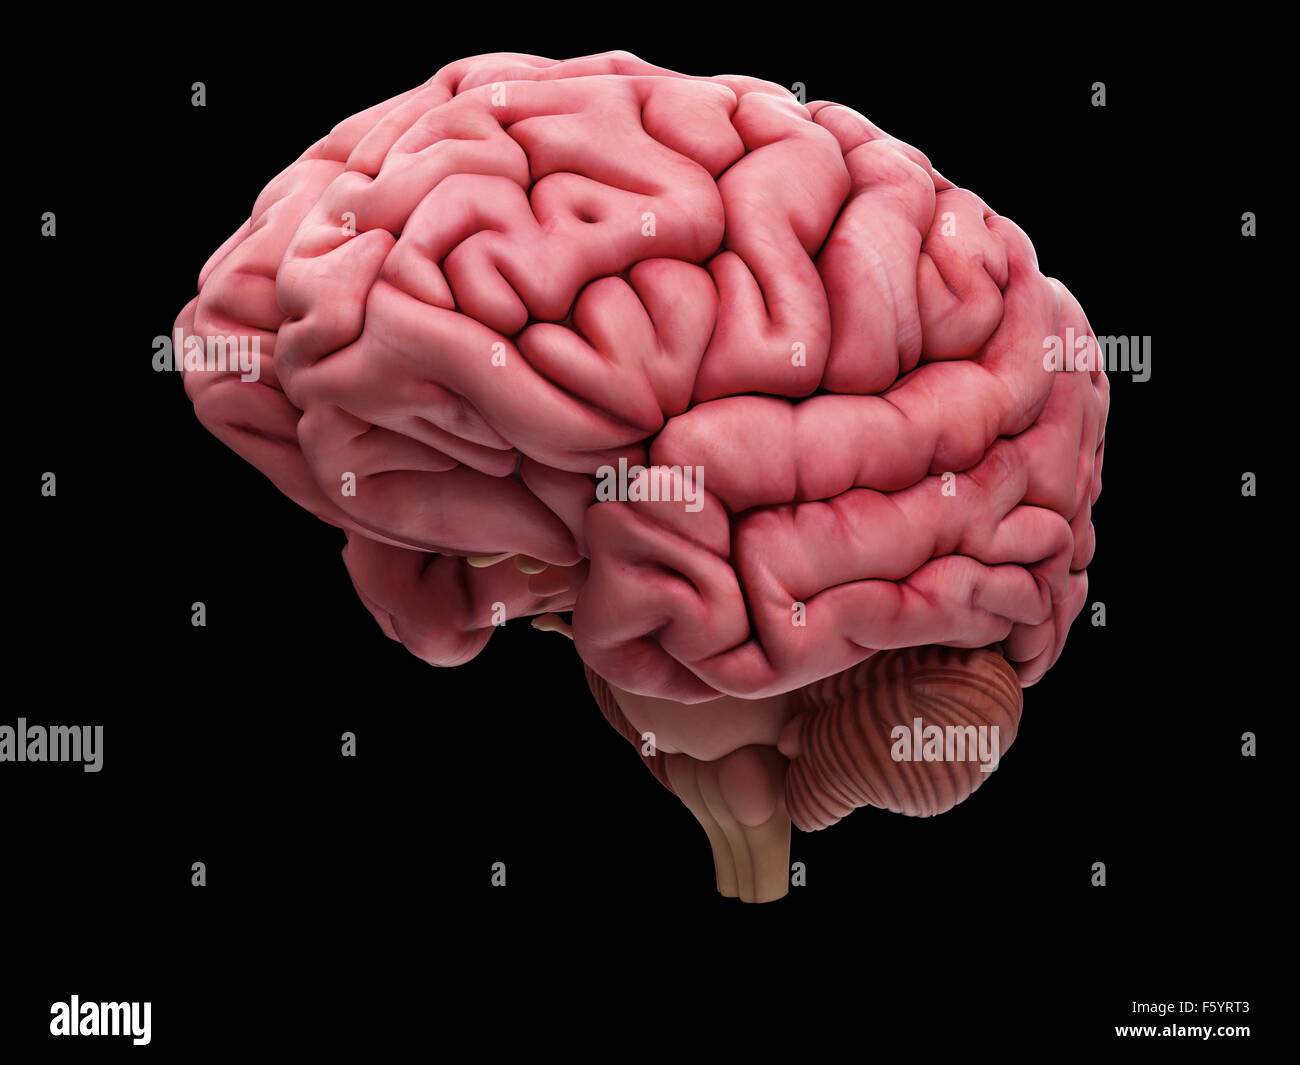 medically accurate illustration of the brain - Stock Image